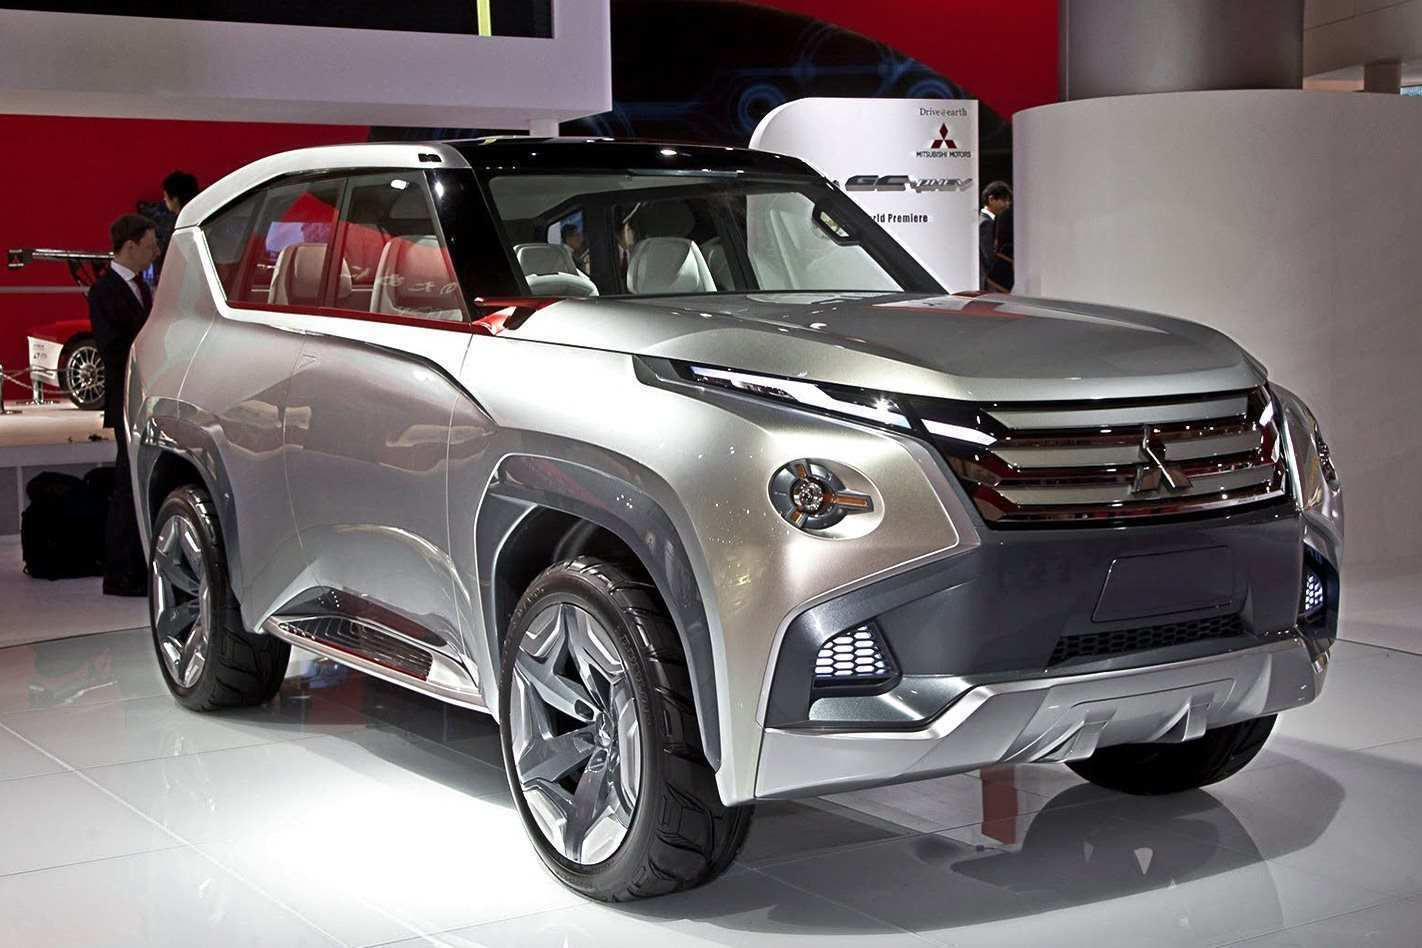 46 Best Review 2020 Mitsubishi Montero 2018 Configurations for 2020 Mitsubishi Montero 2018